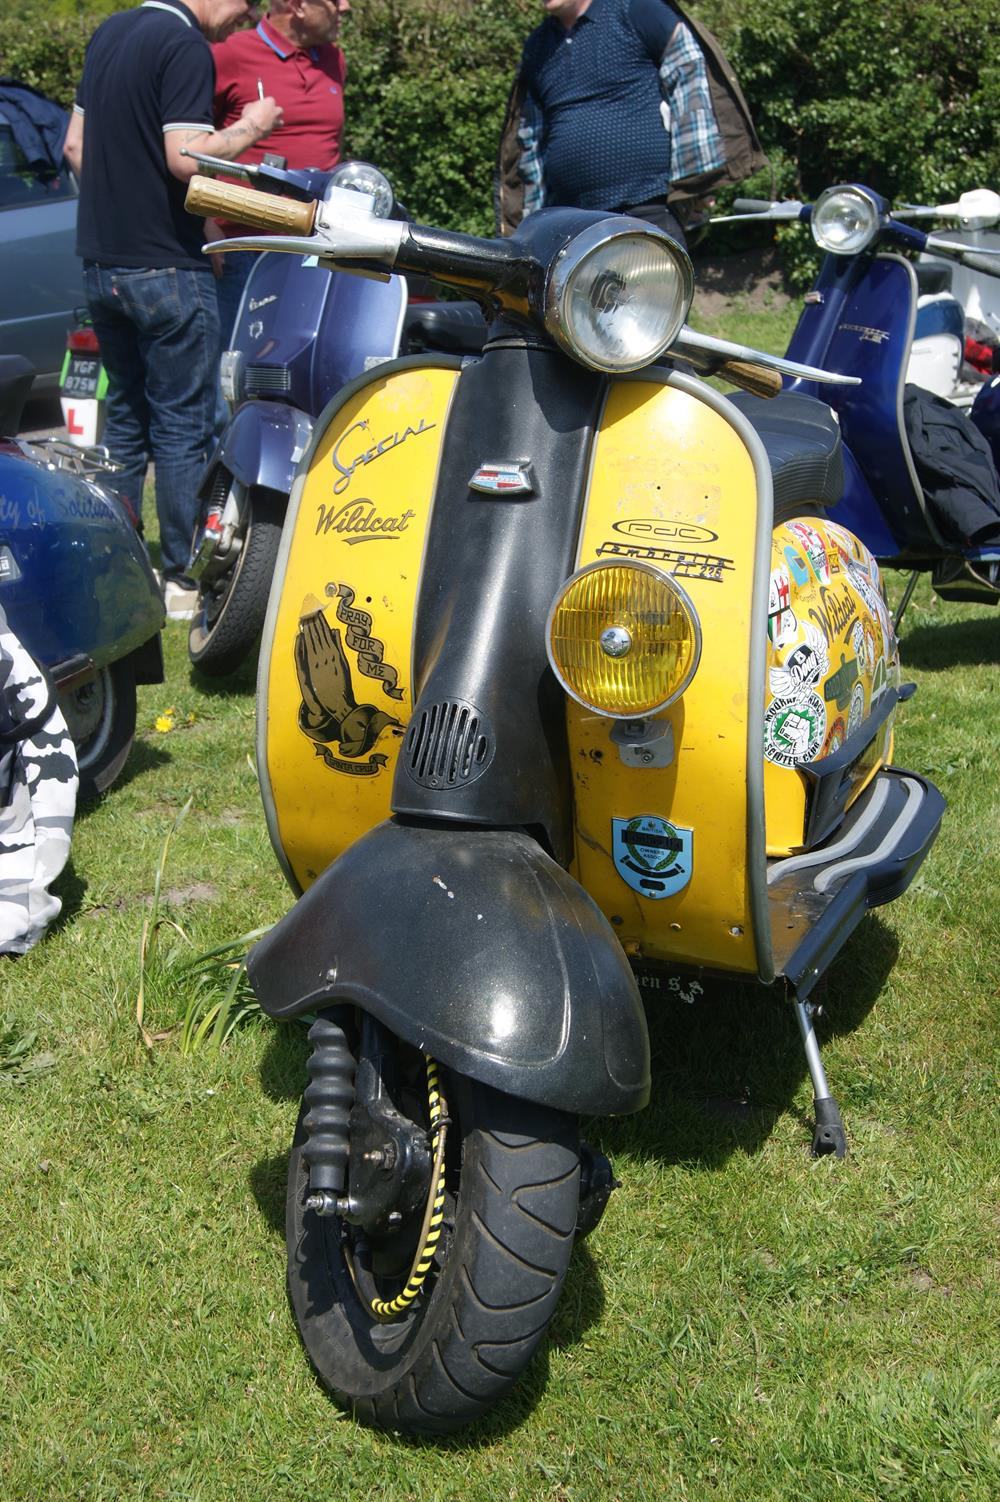 Yellow and black Series 2 Lambretta scooter